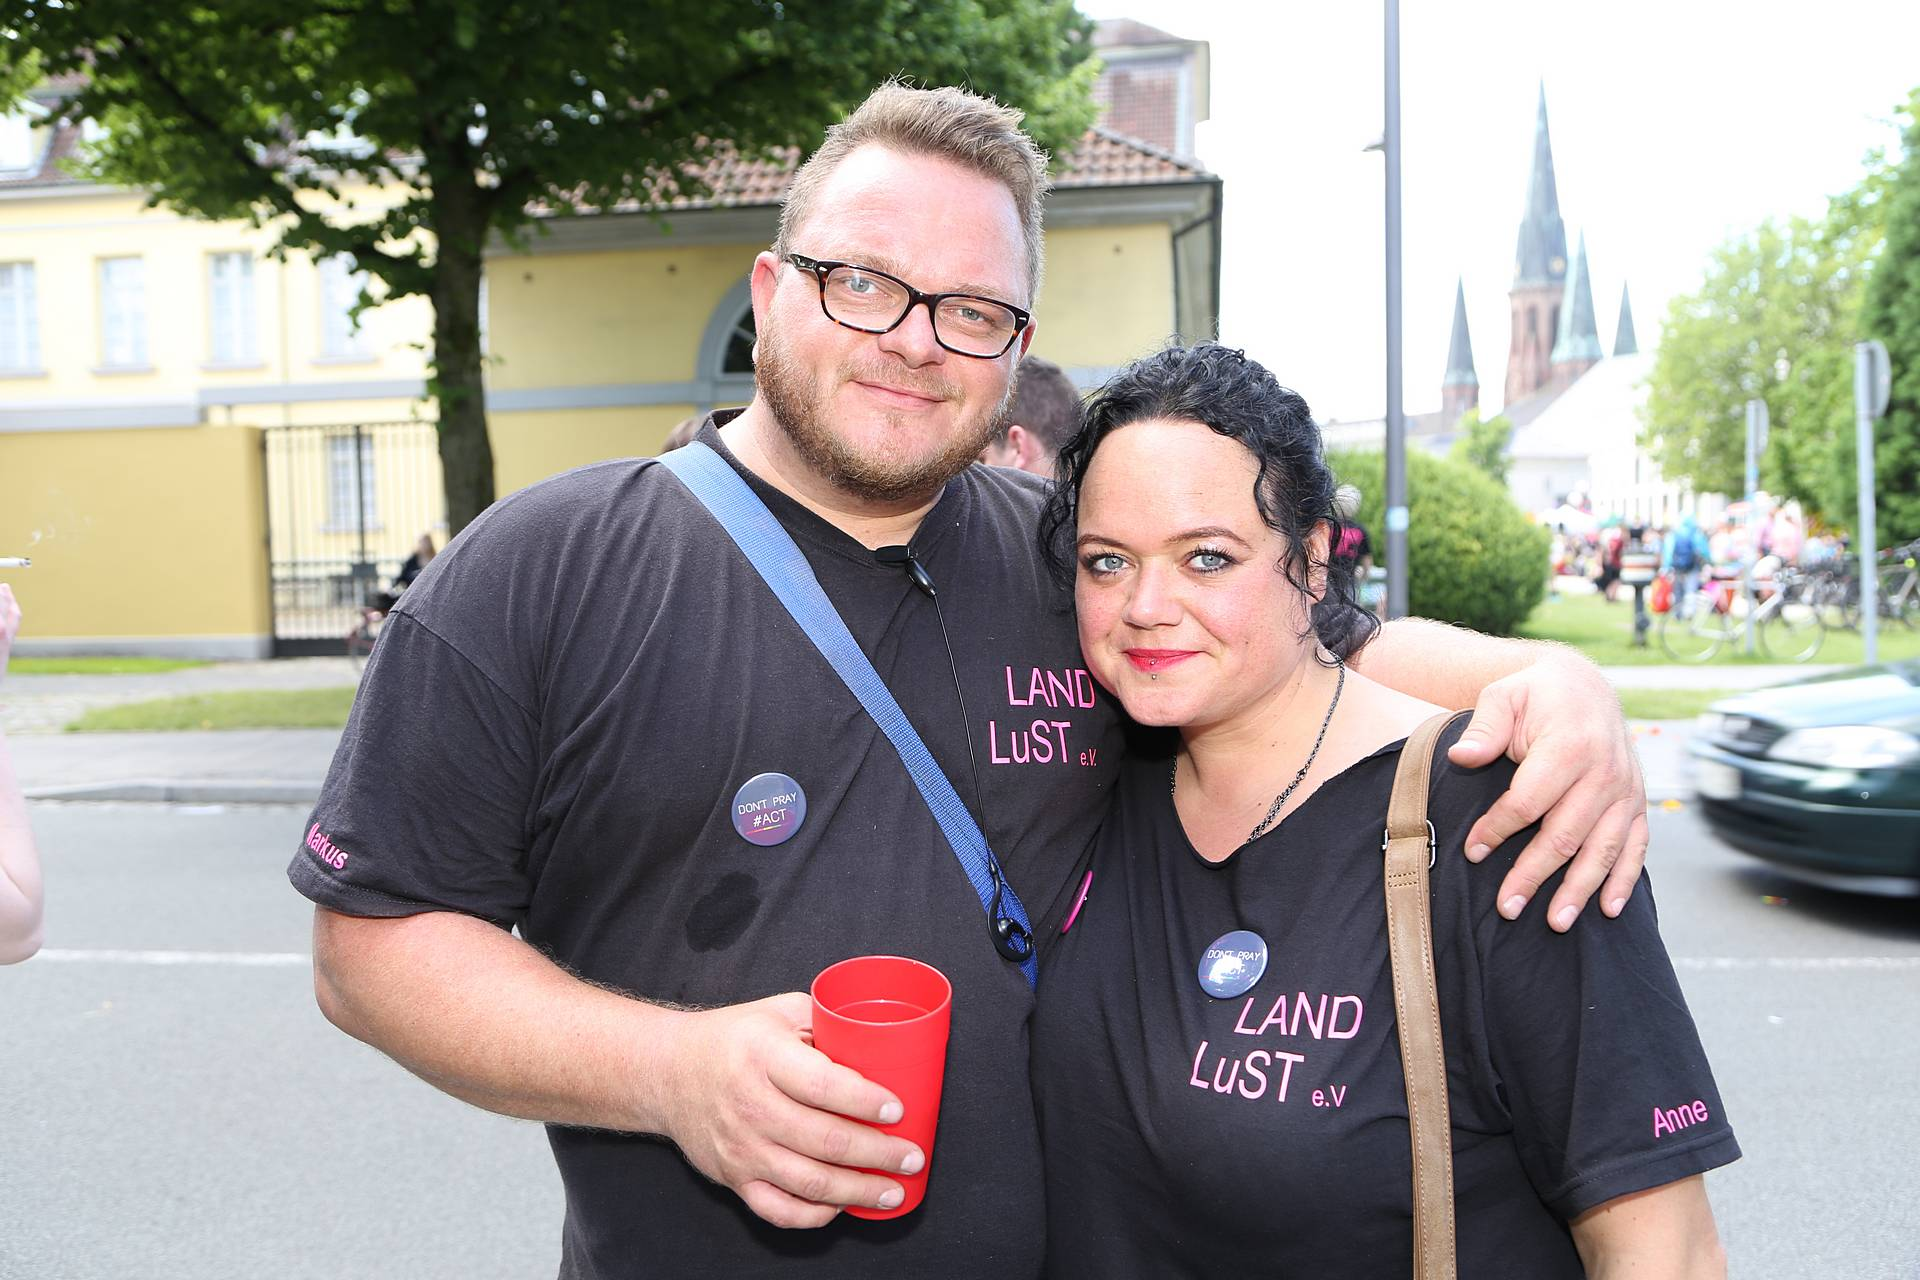 CSD Nordwest - Demonstration / 1547x betrachtet